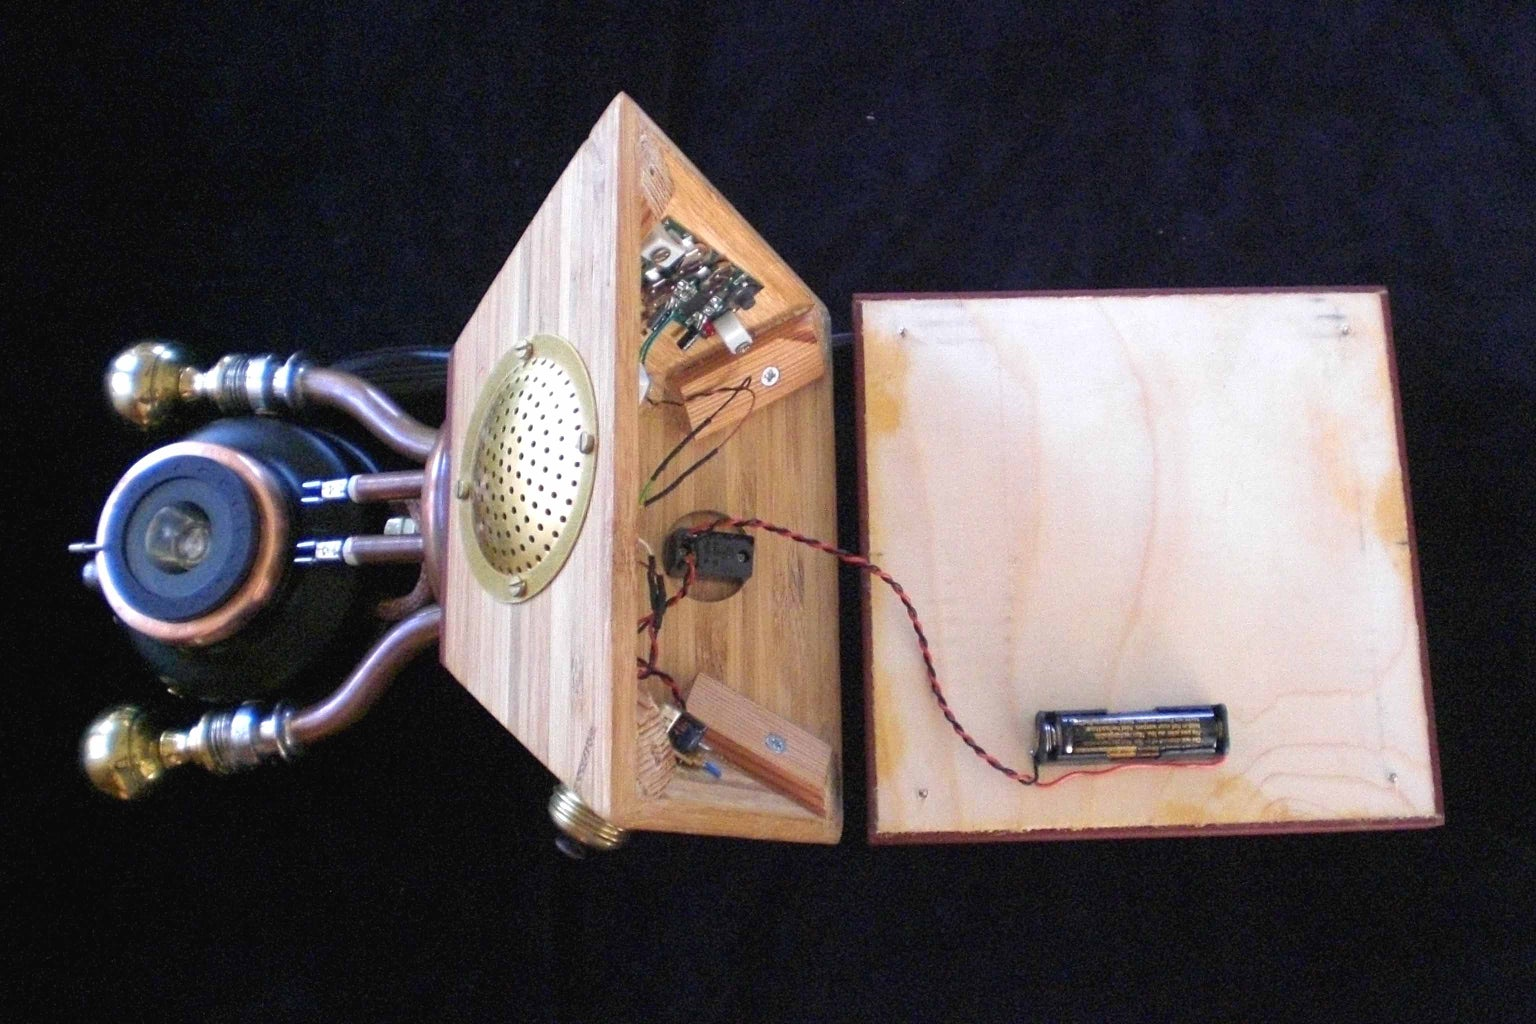 Look Inside the Woodden Box